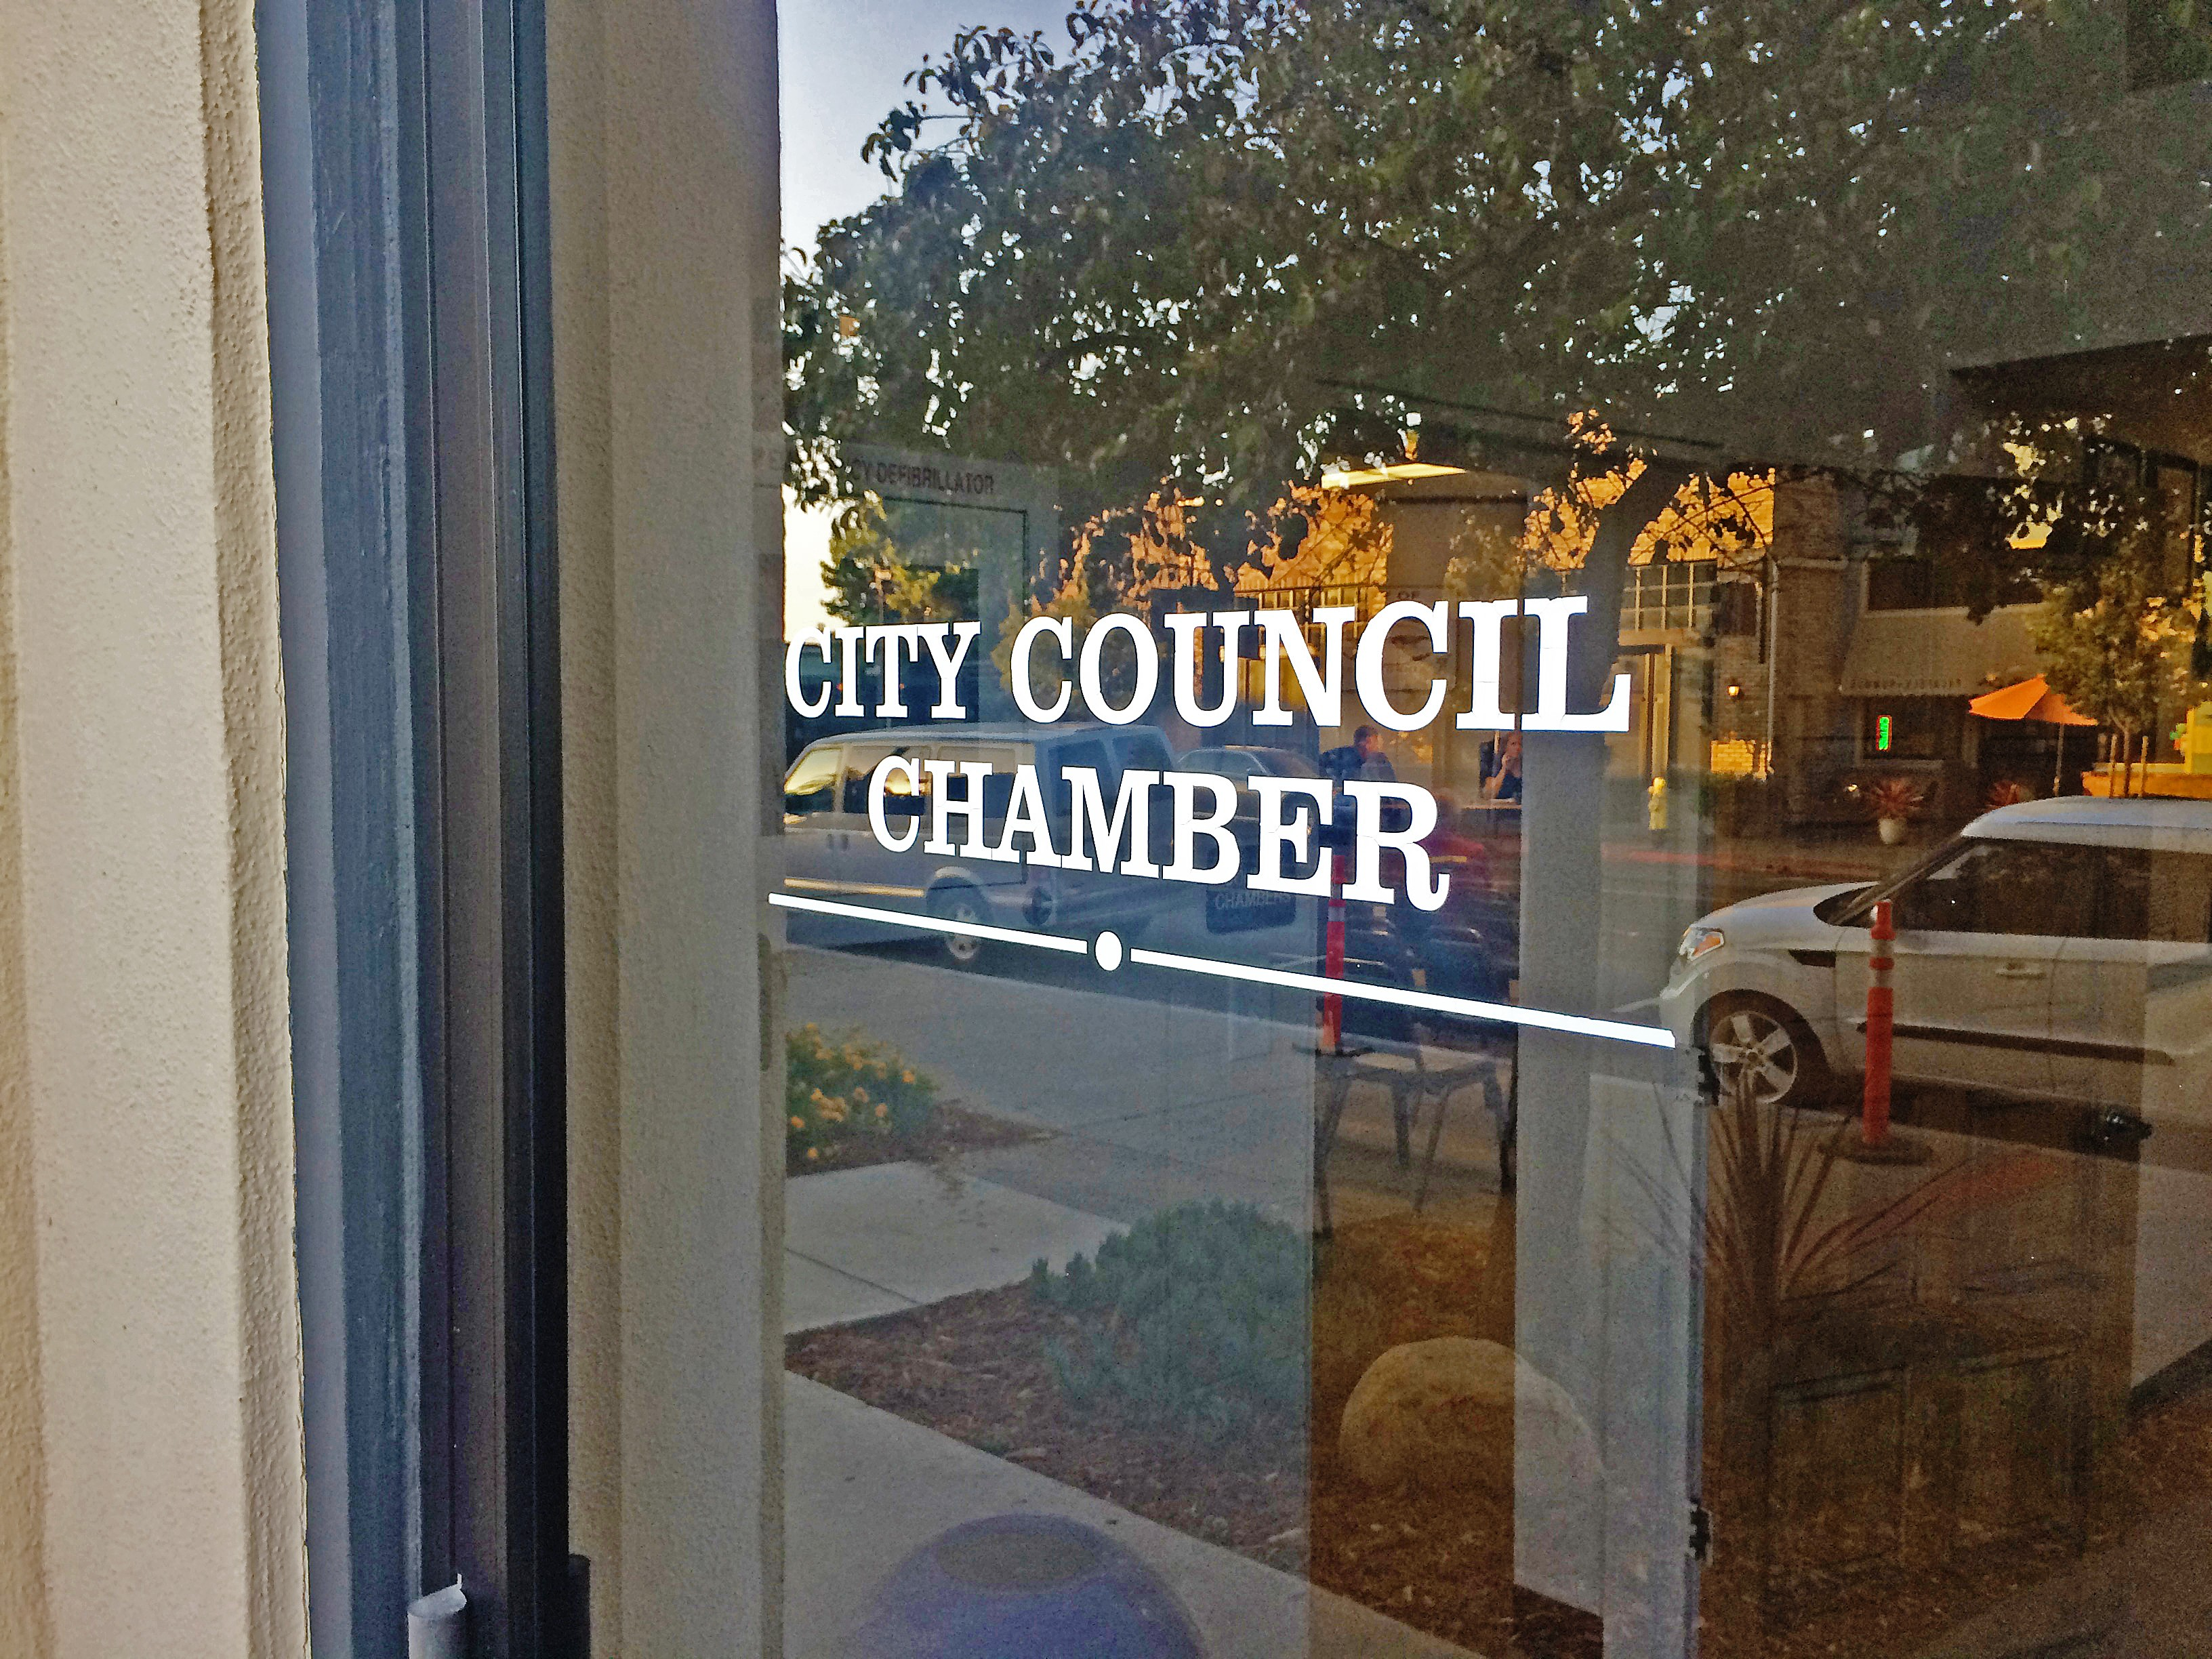 arroyo grande seeks to fix lengthy wait times for building permit